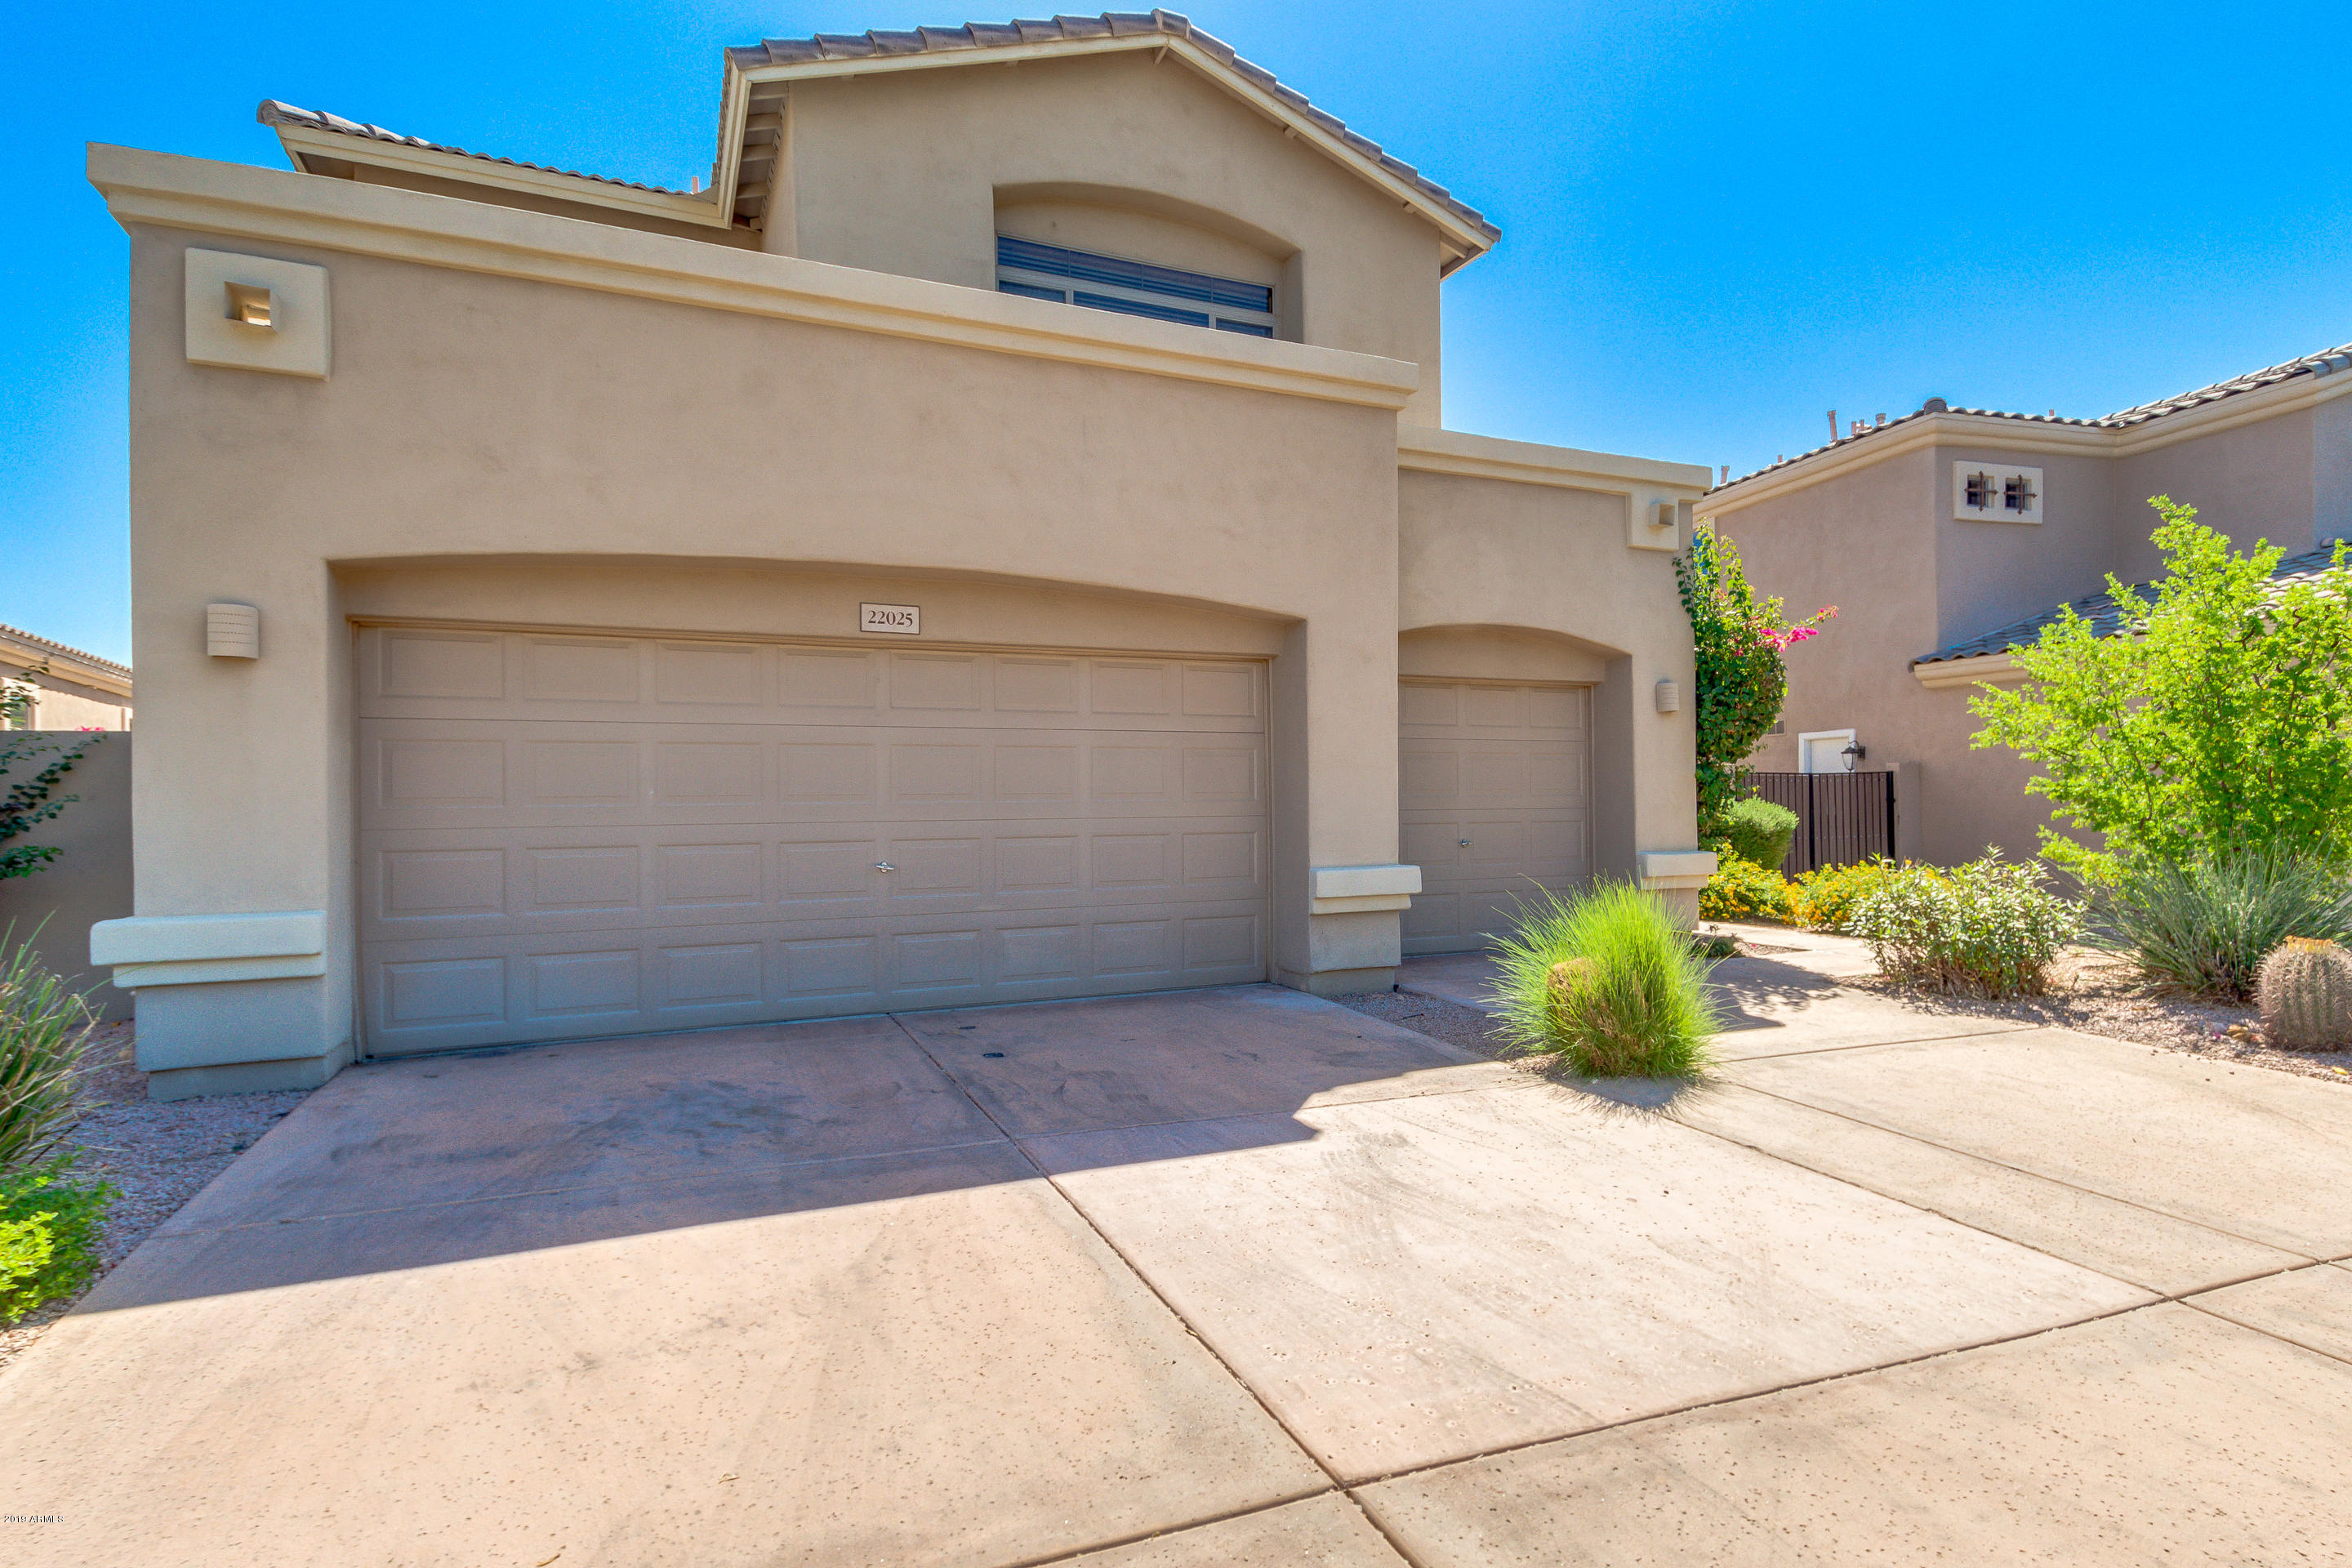 Photo of 22025 N 51ST Street, Phoenix, AZ 85054